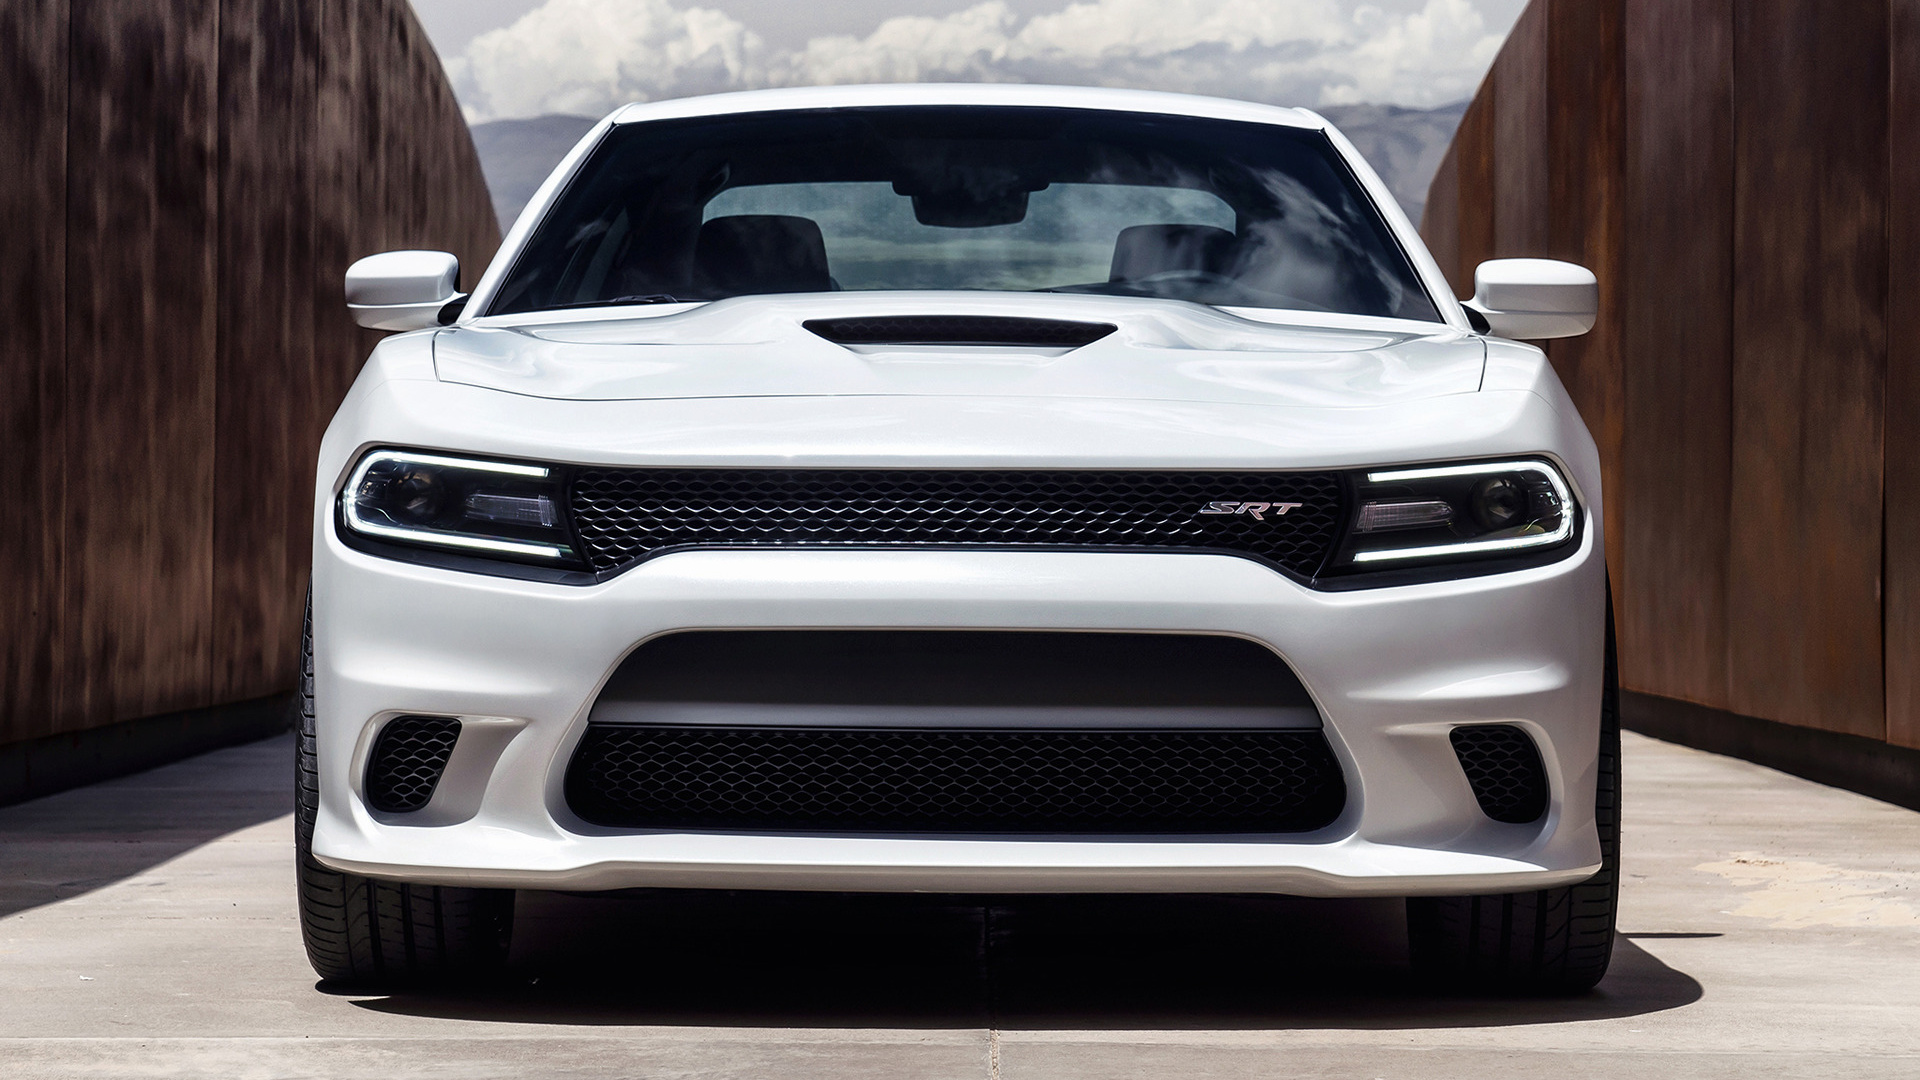 Dodge Charger Srt Hellcat >> Dodge Charger SRT Hellcat (2015) Wallpapers and HD Images - Car Pixel